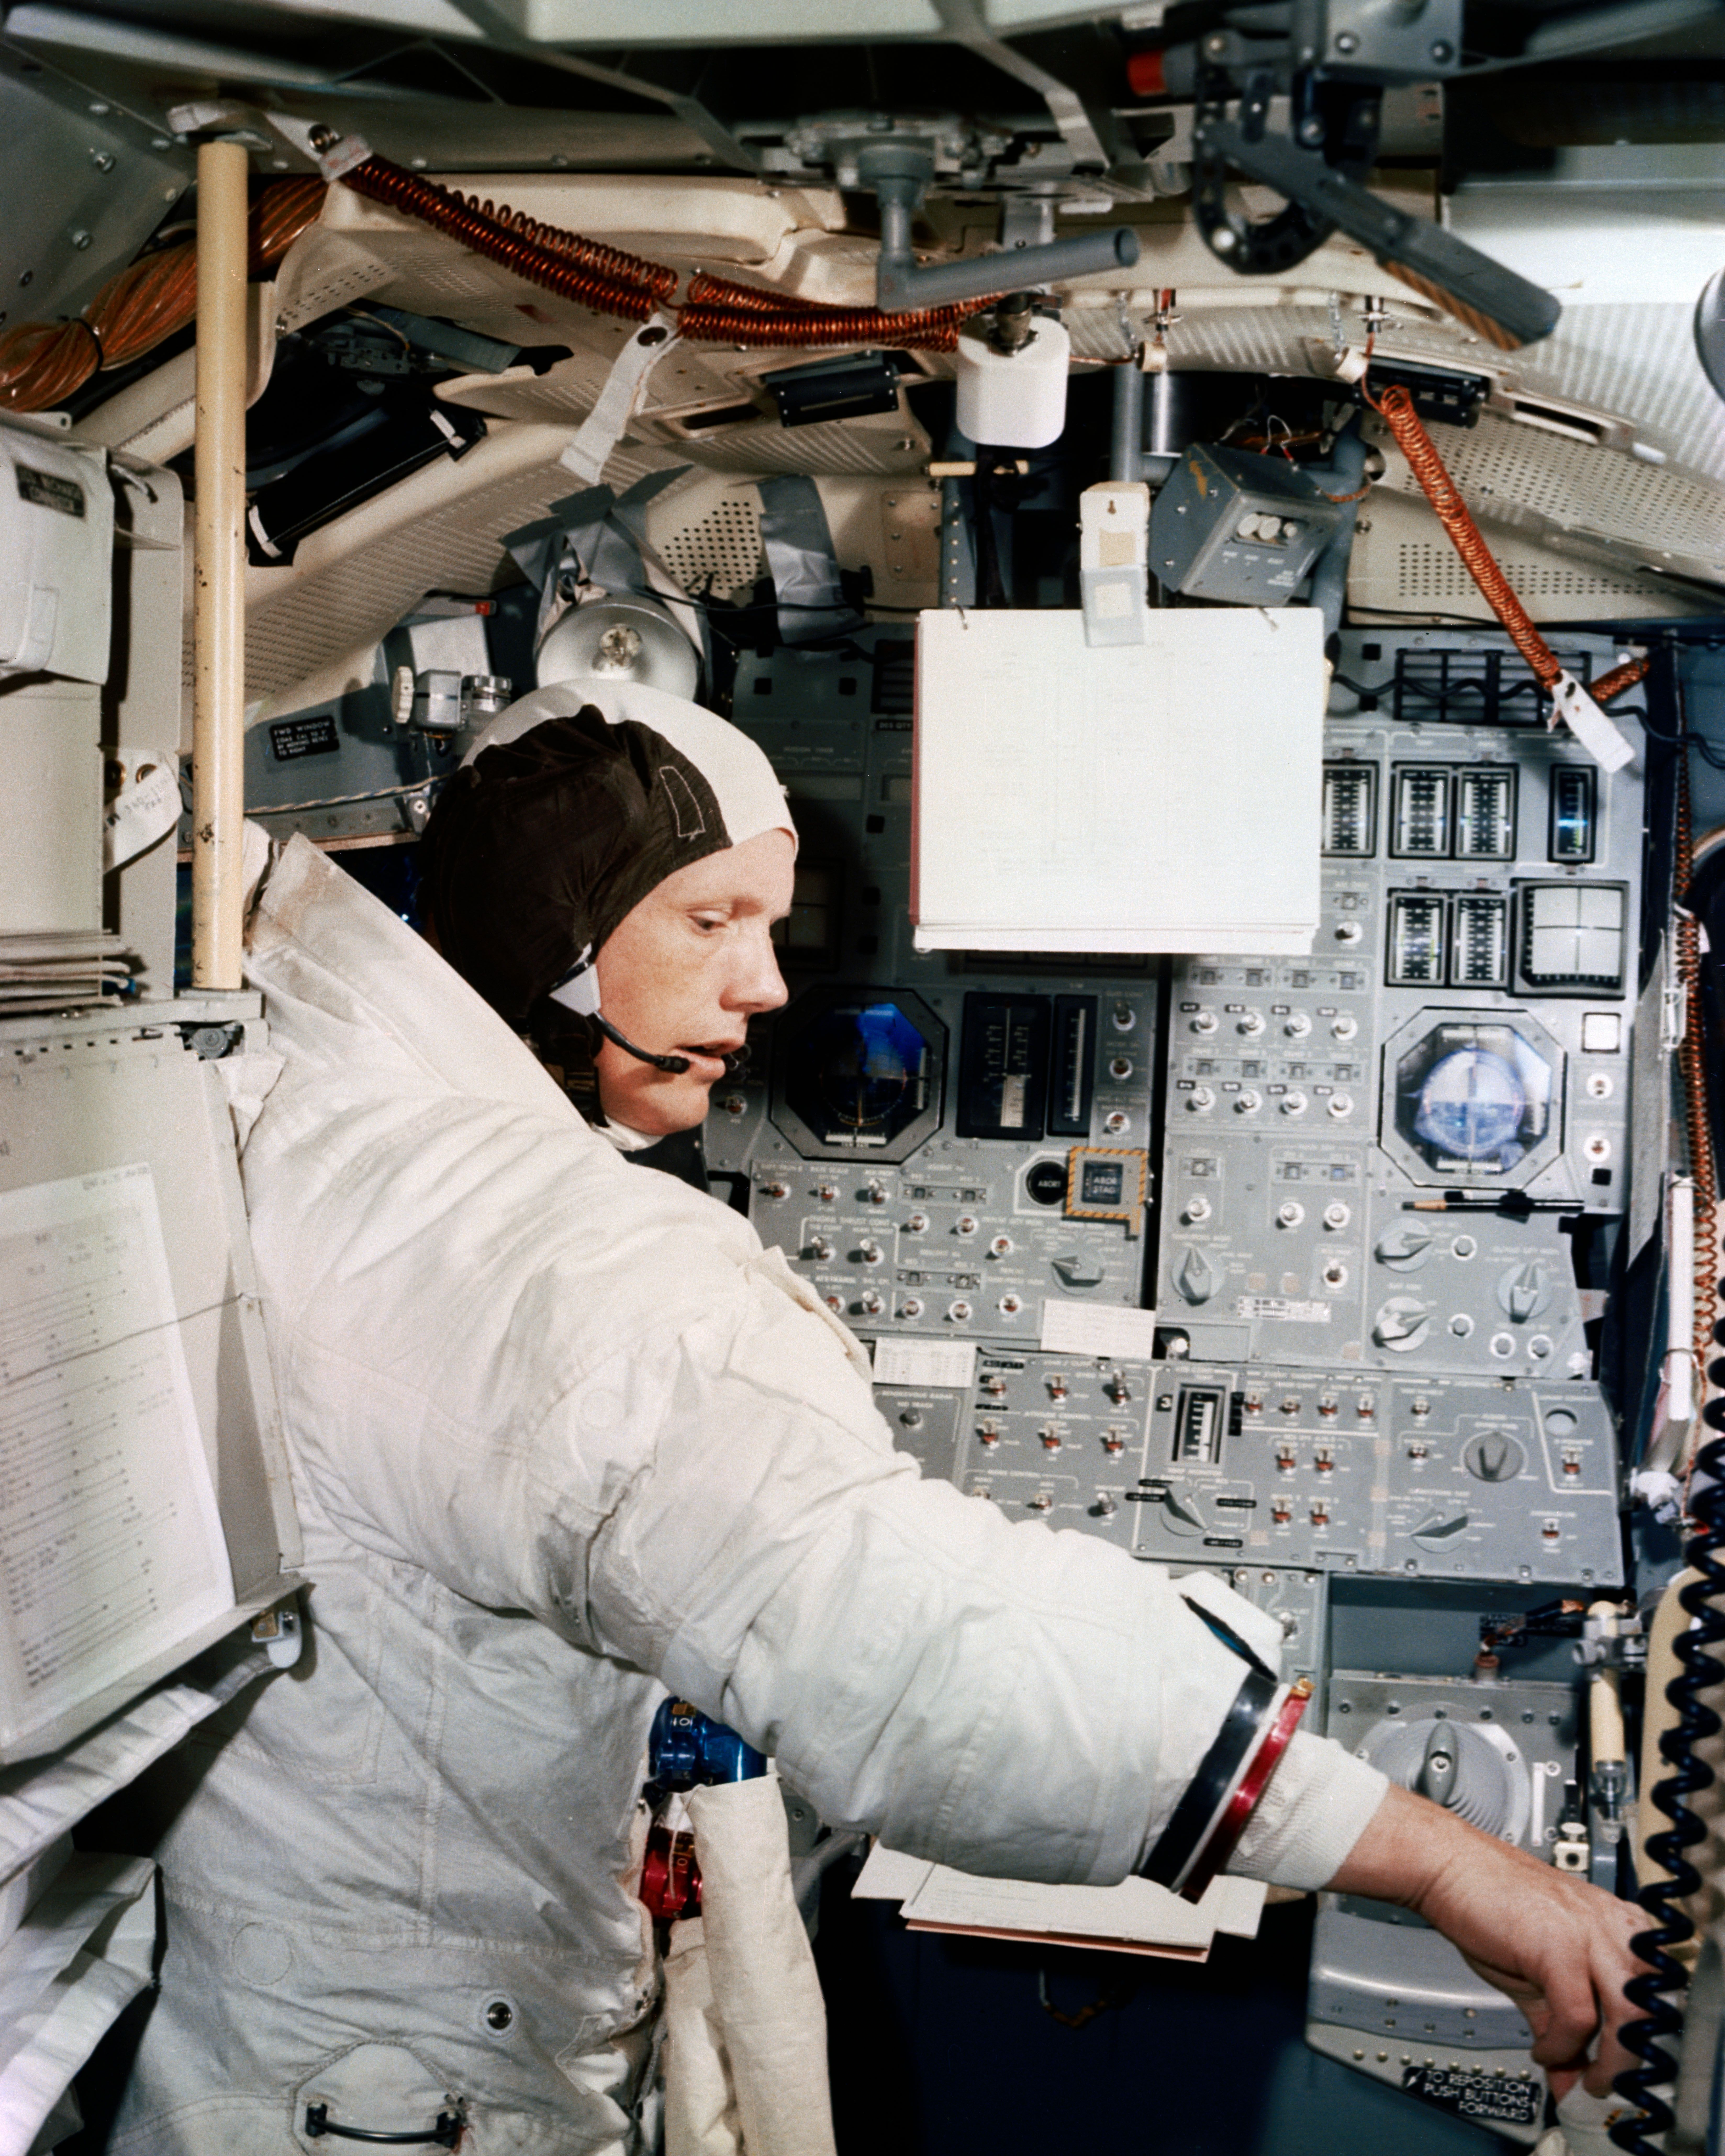 Neil a armstrong in simulation training inside the apollo lunar module mission simulator